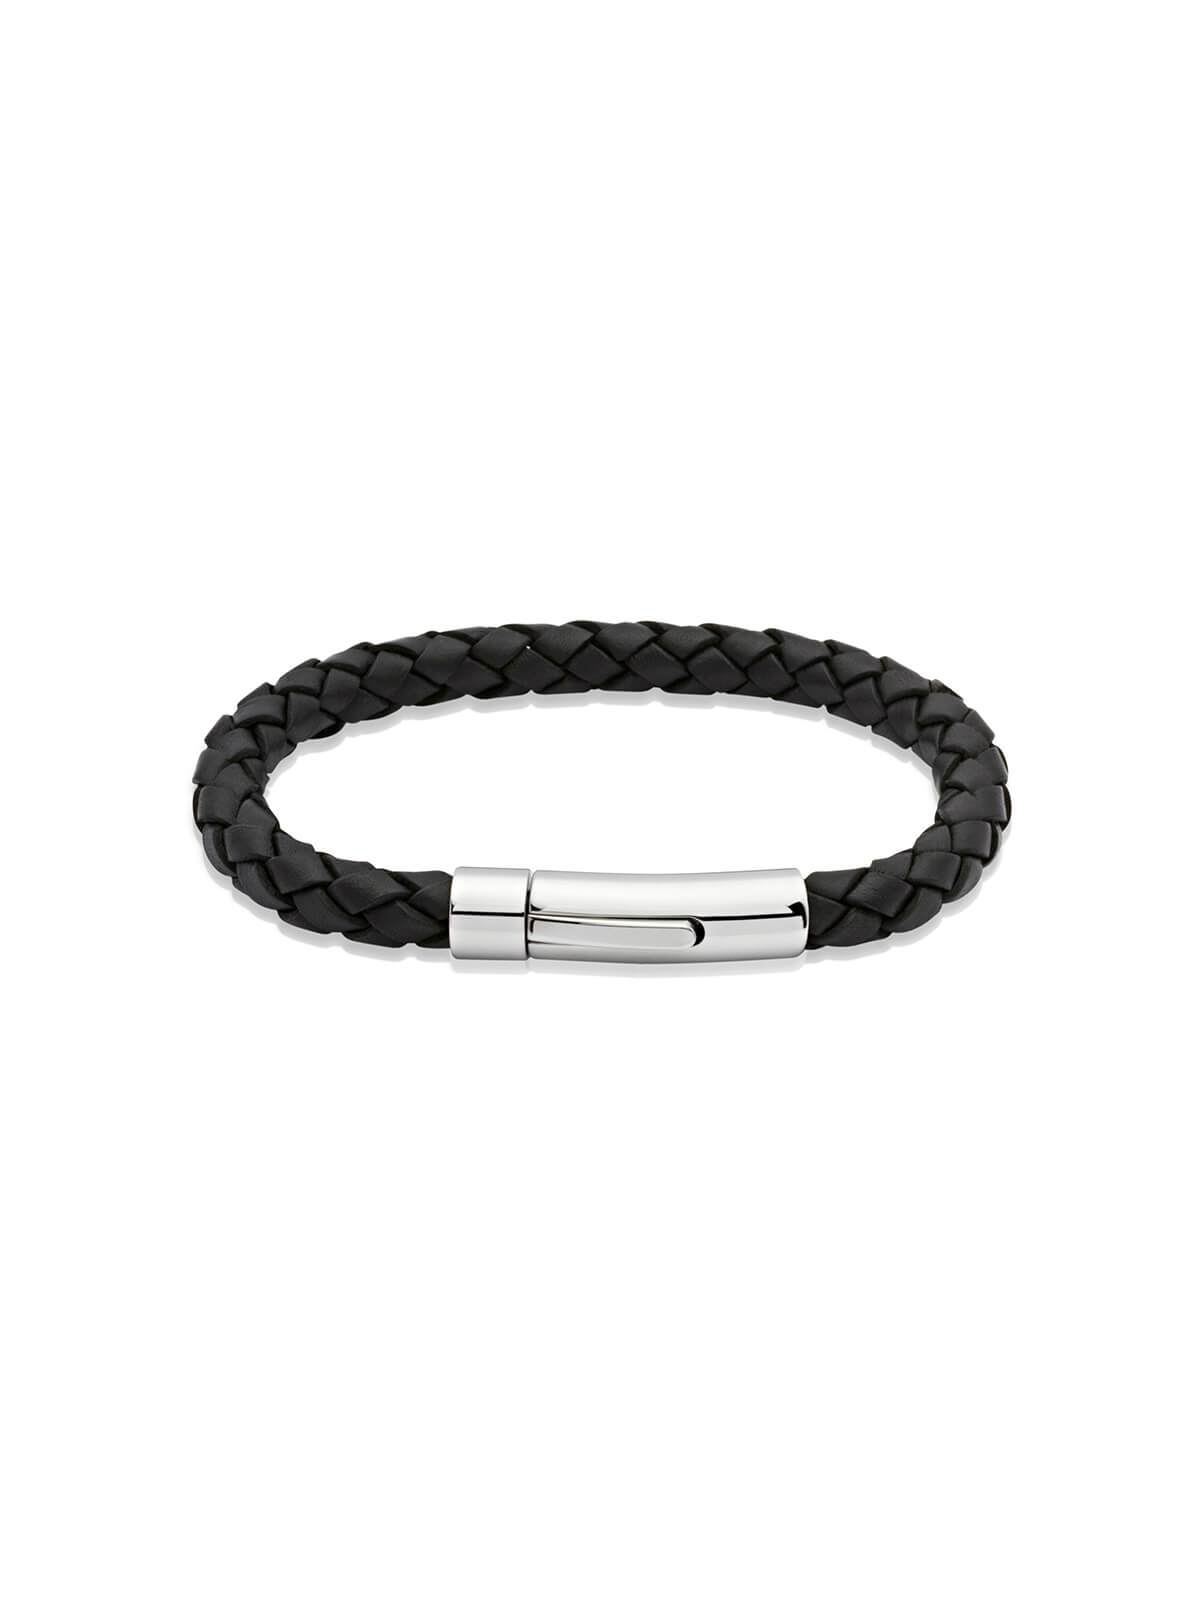 Unique & Co. 19cm Black Leather Bracelet A40BL/19CM